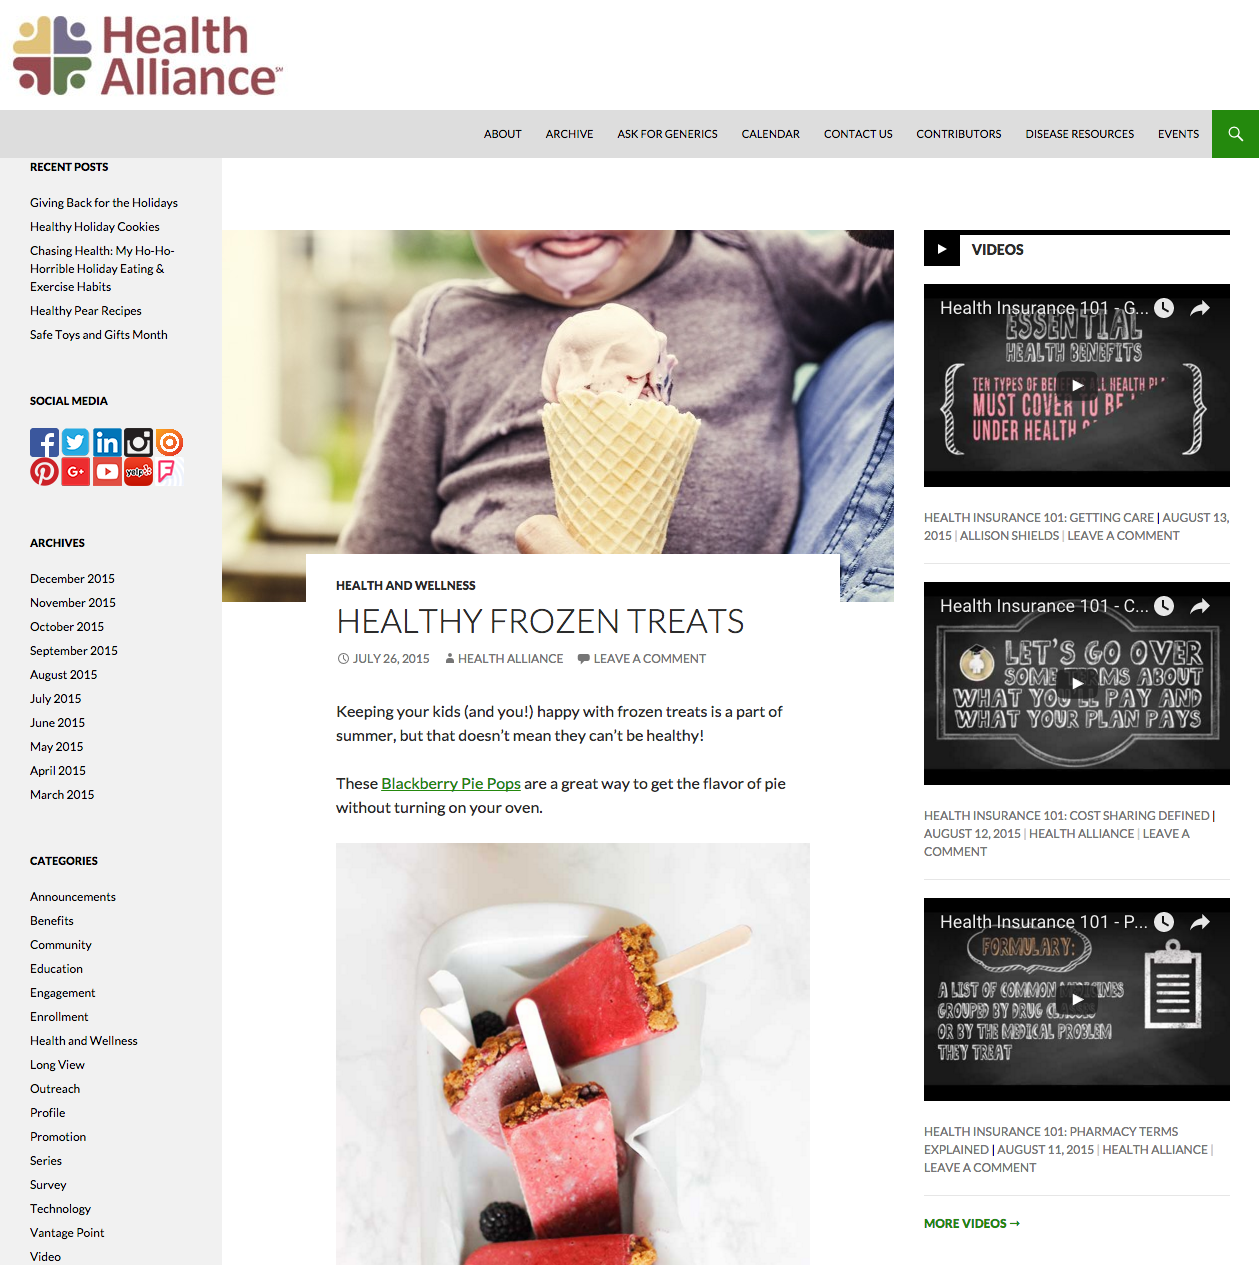 Healthy Frozen Treats Blog Post